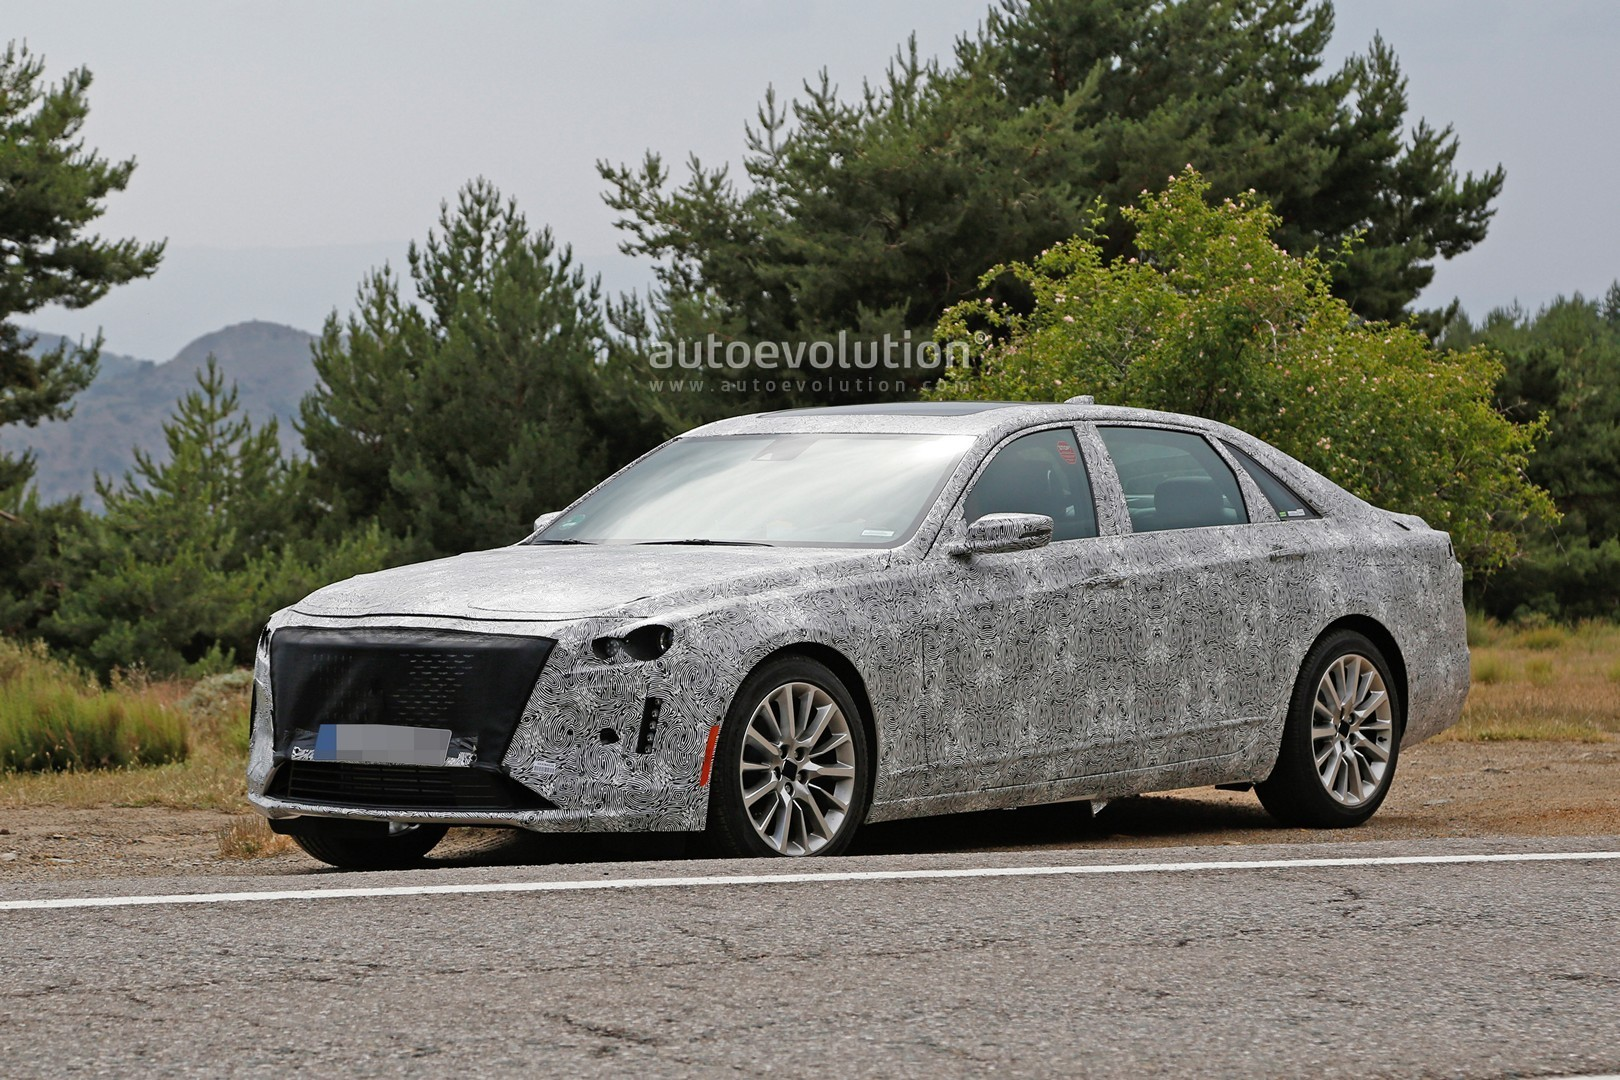 2019 Cadillac CT6 Drops 2.0-liter Turbo Engine, ATS Could ...